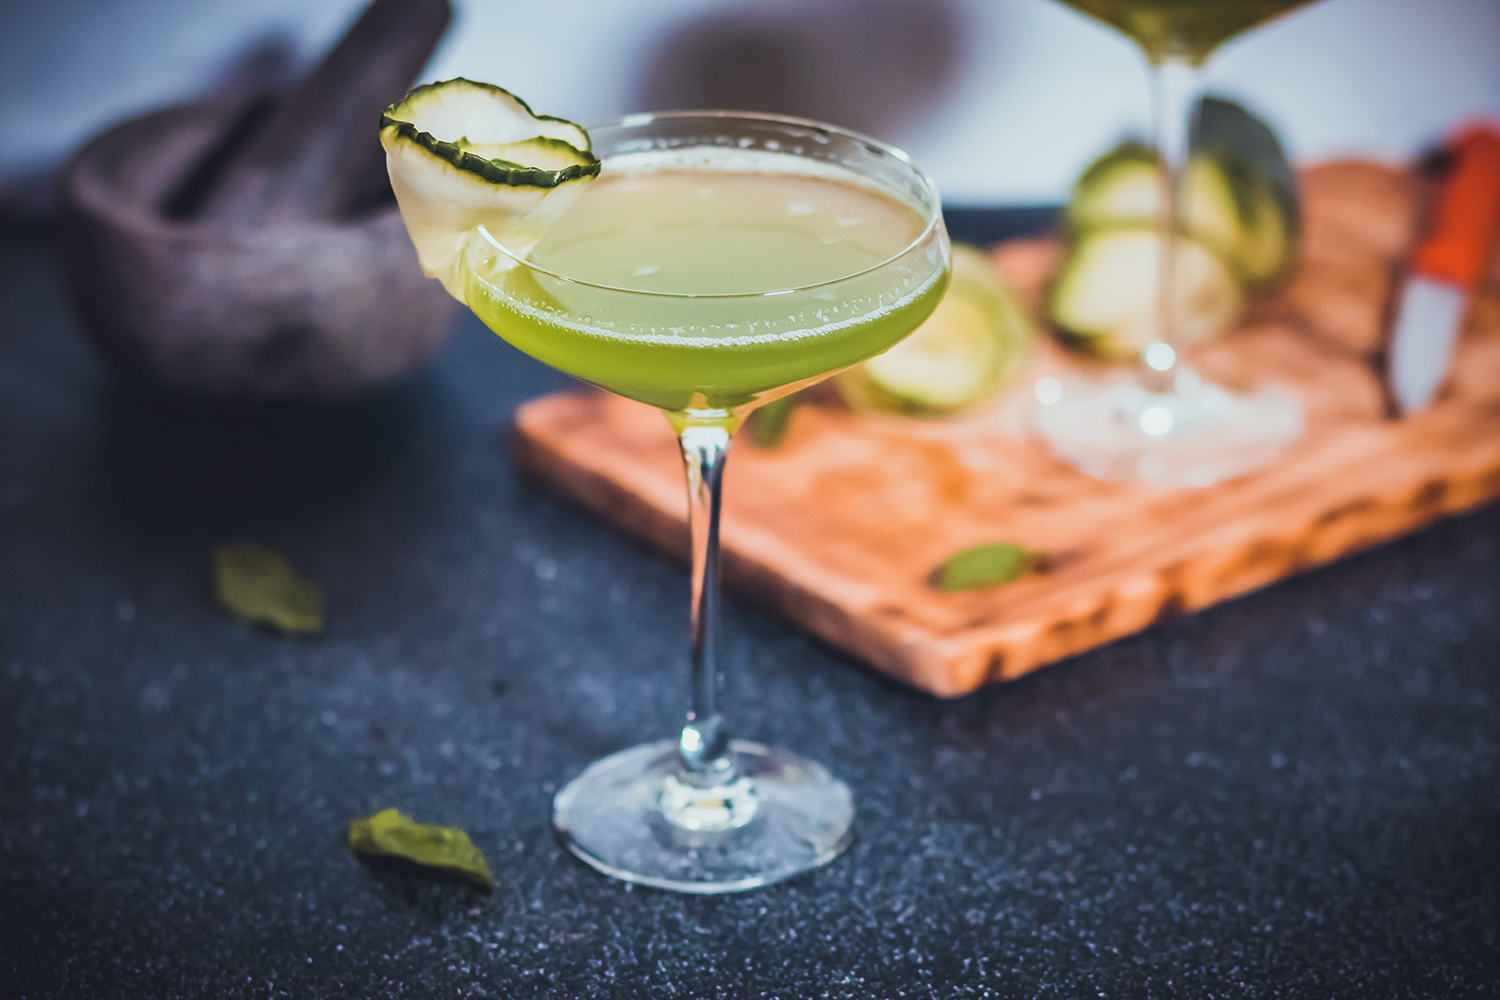 Green cocktail in a martini glass, is alcohol a trigger for IBS